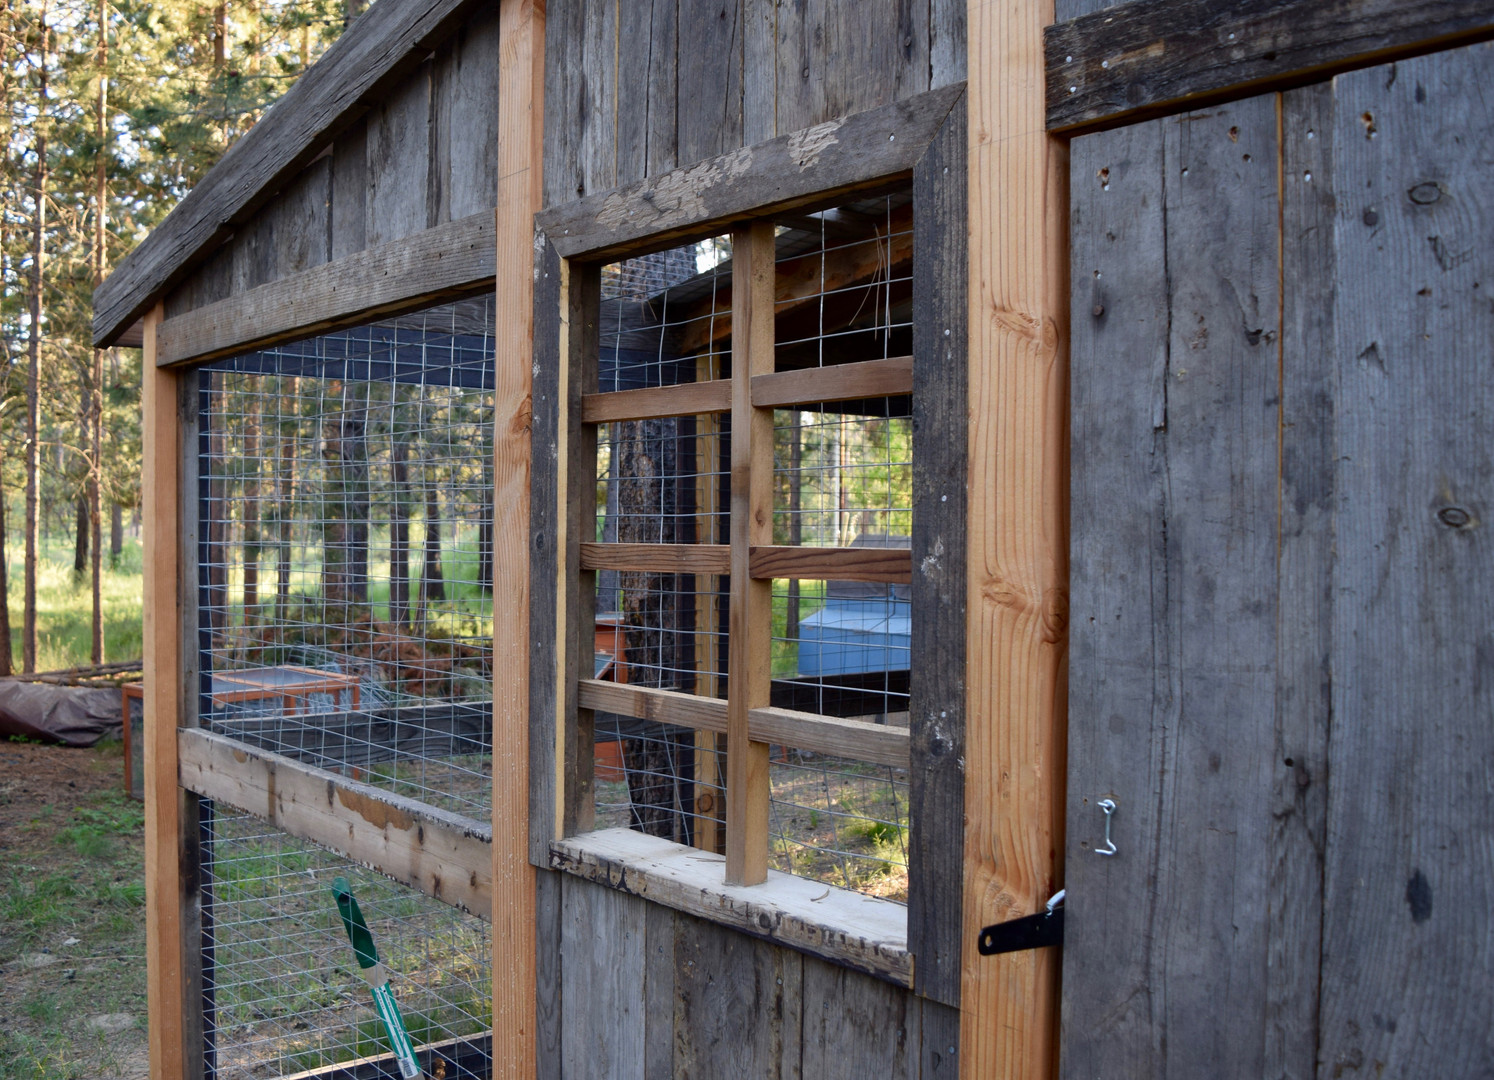 Chicken Coop Window